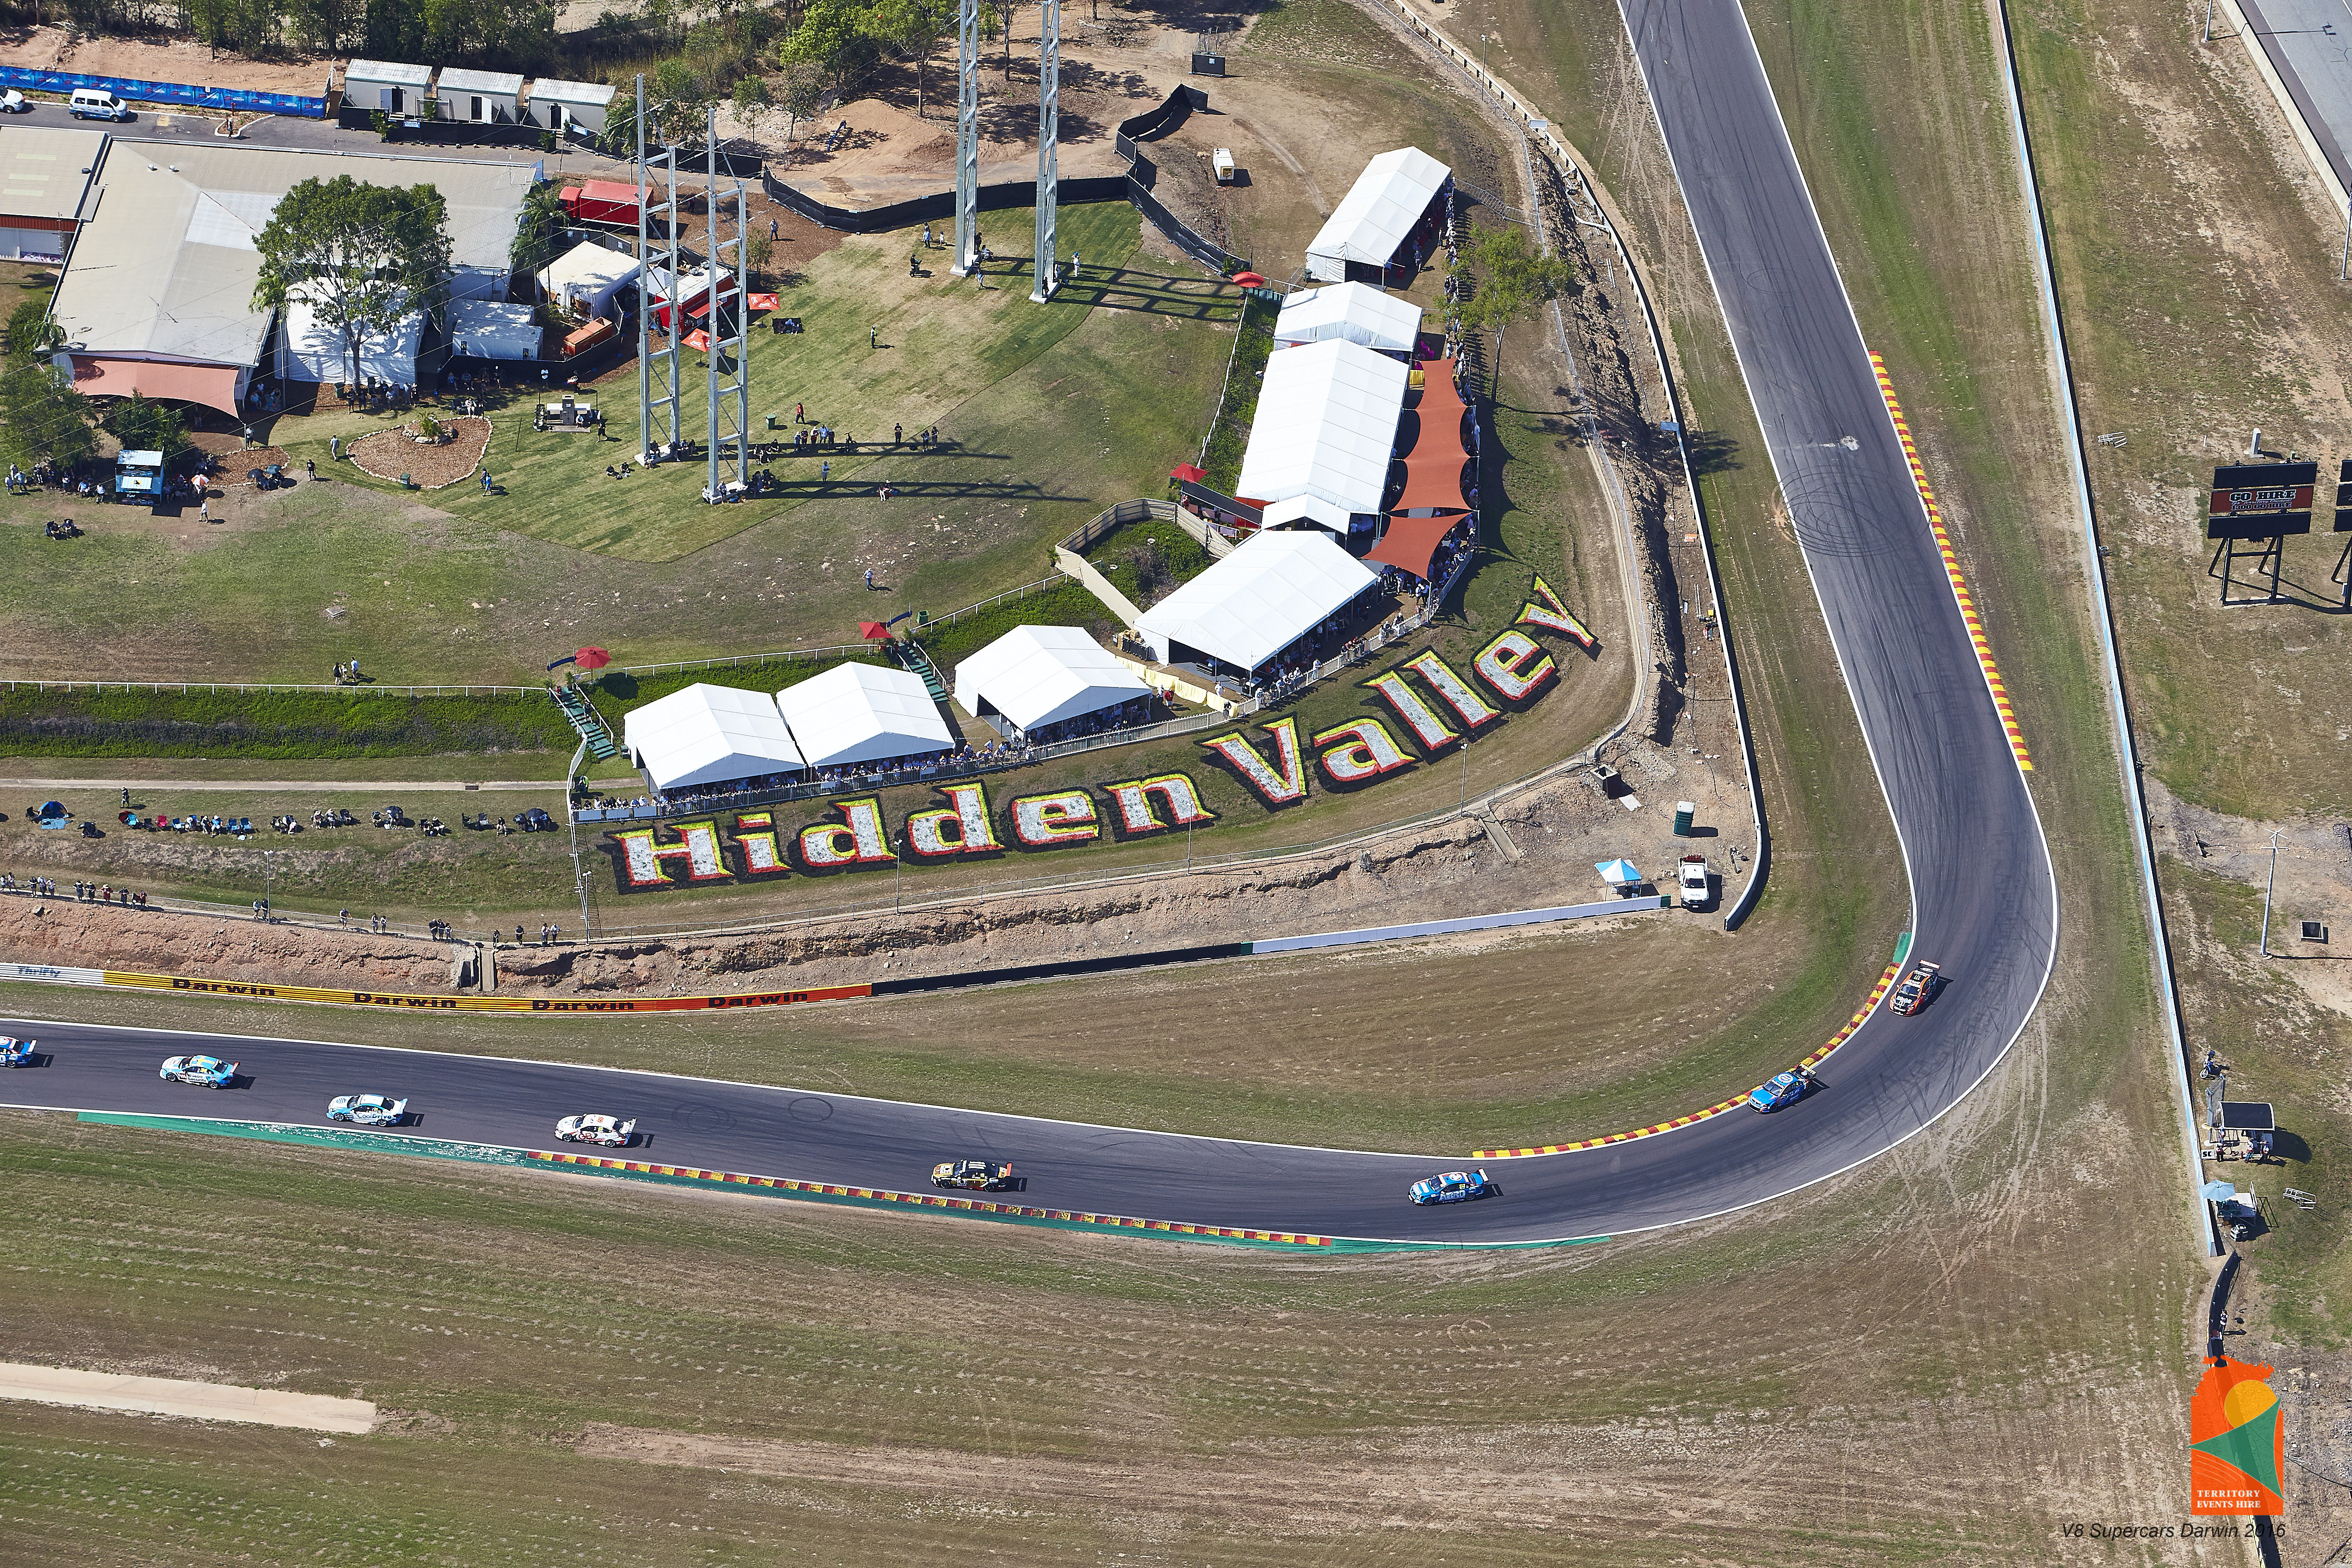 v8 supercars racetrack